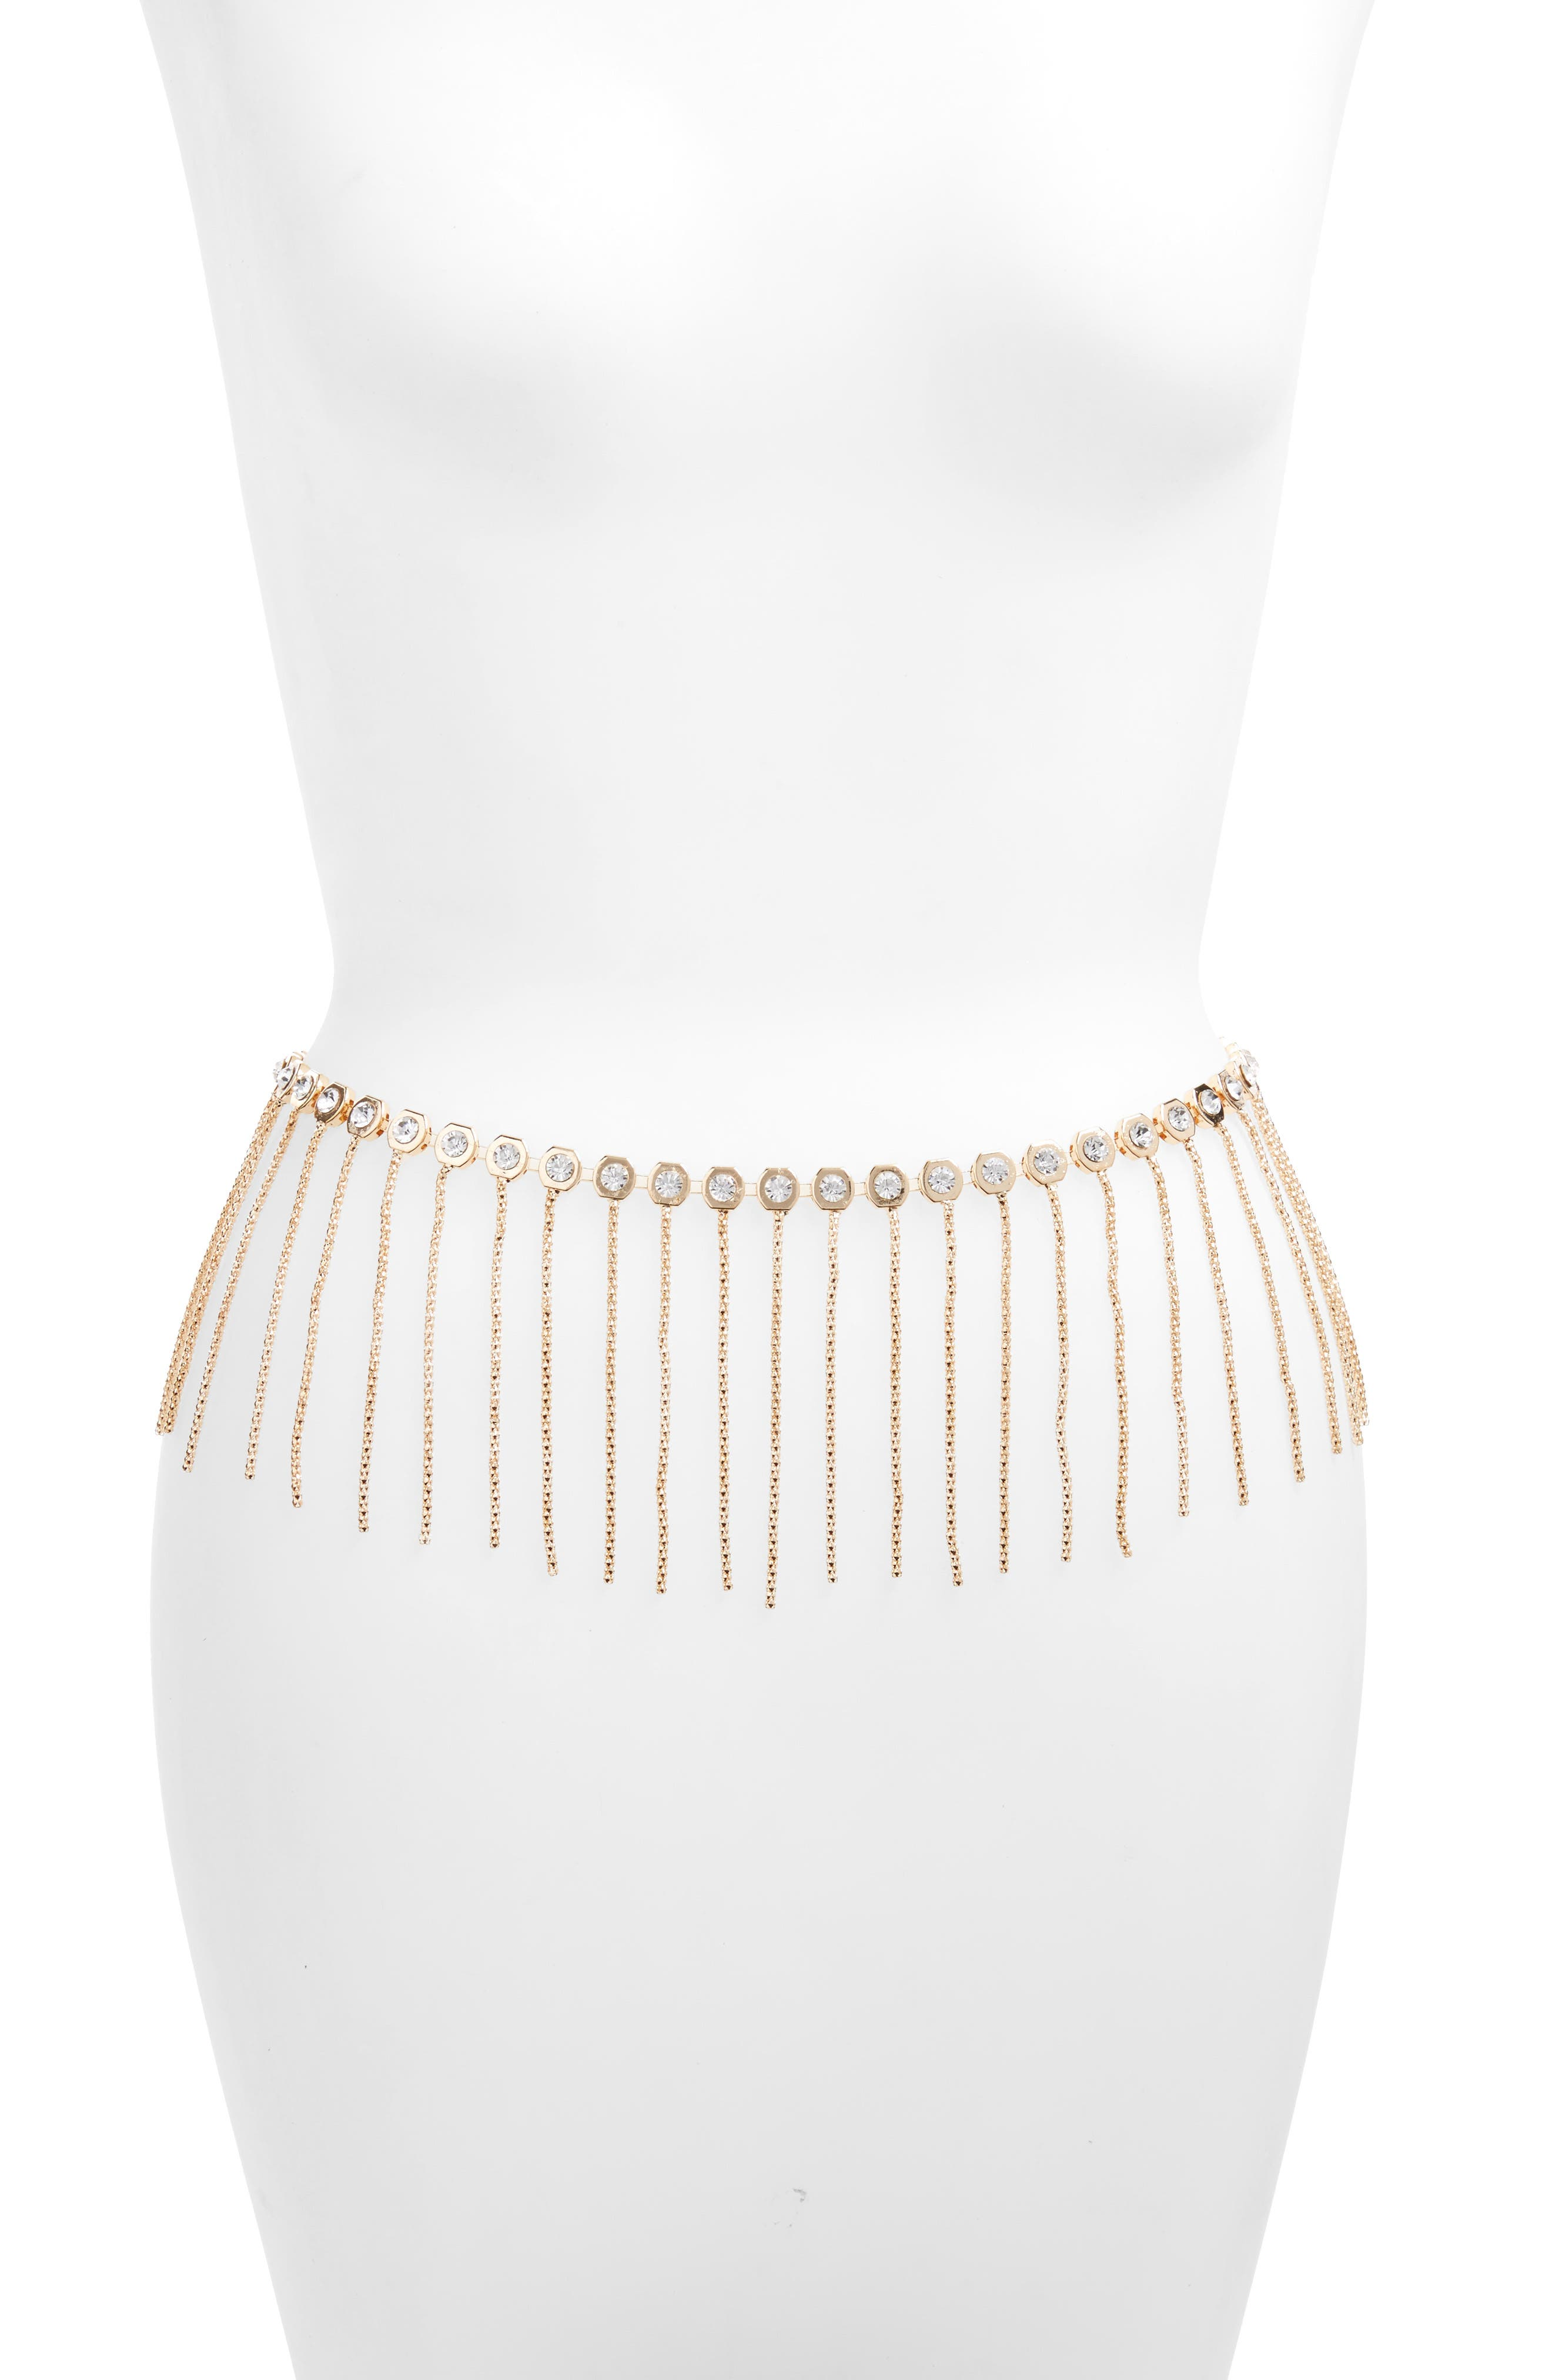 Amici Accessories Crystal Fringe Chain Belt